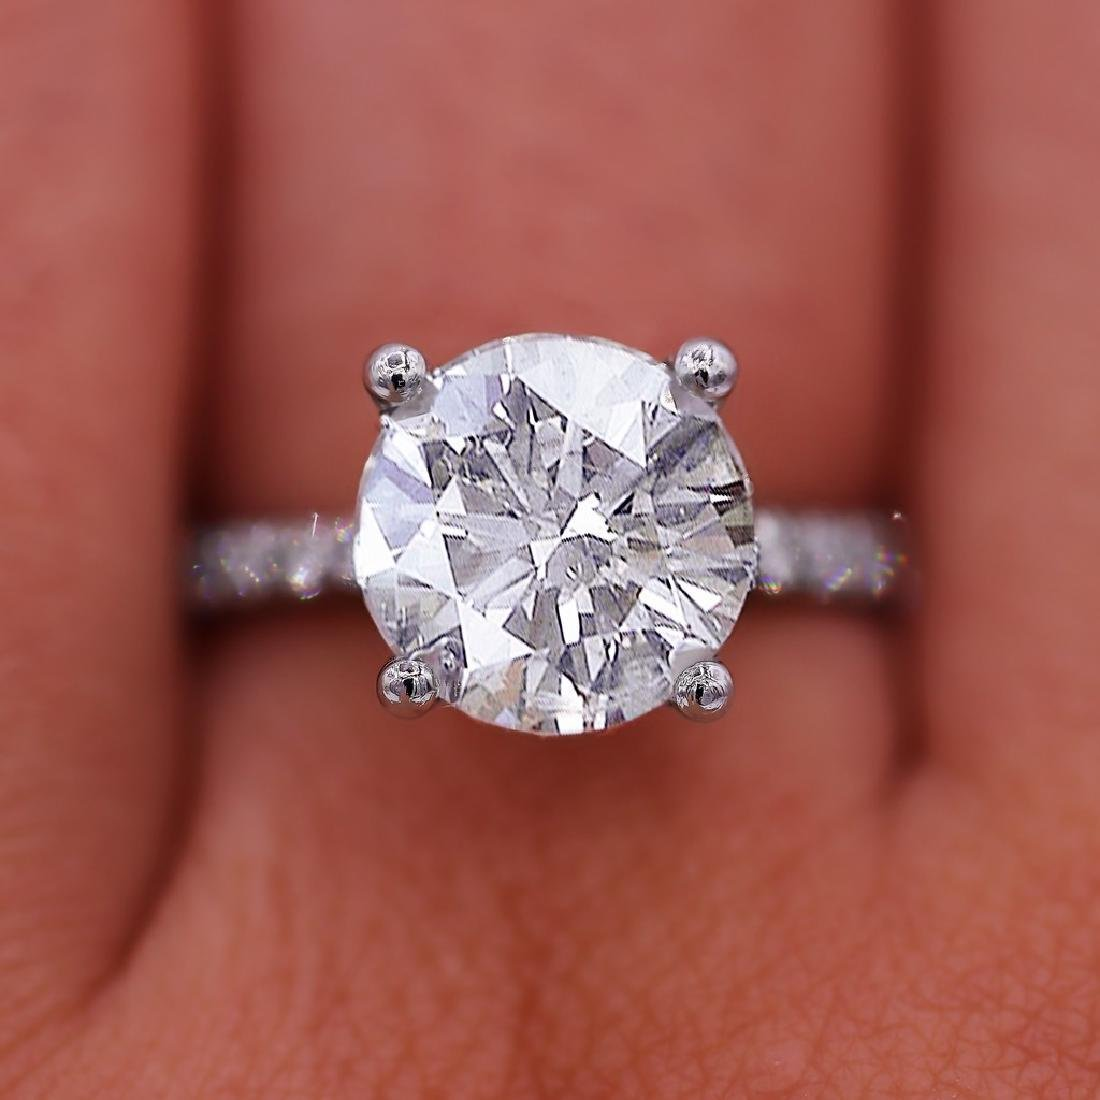 Certified 4.51 Carats Engagement Ring